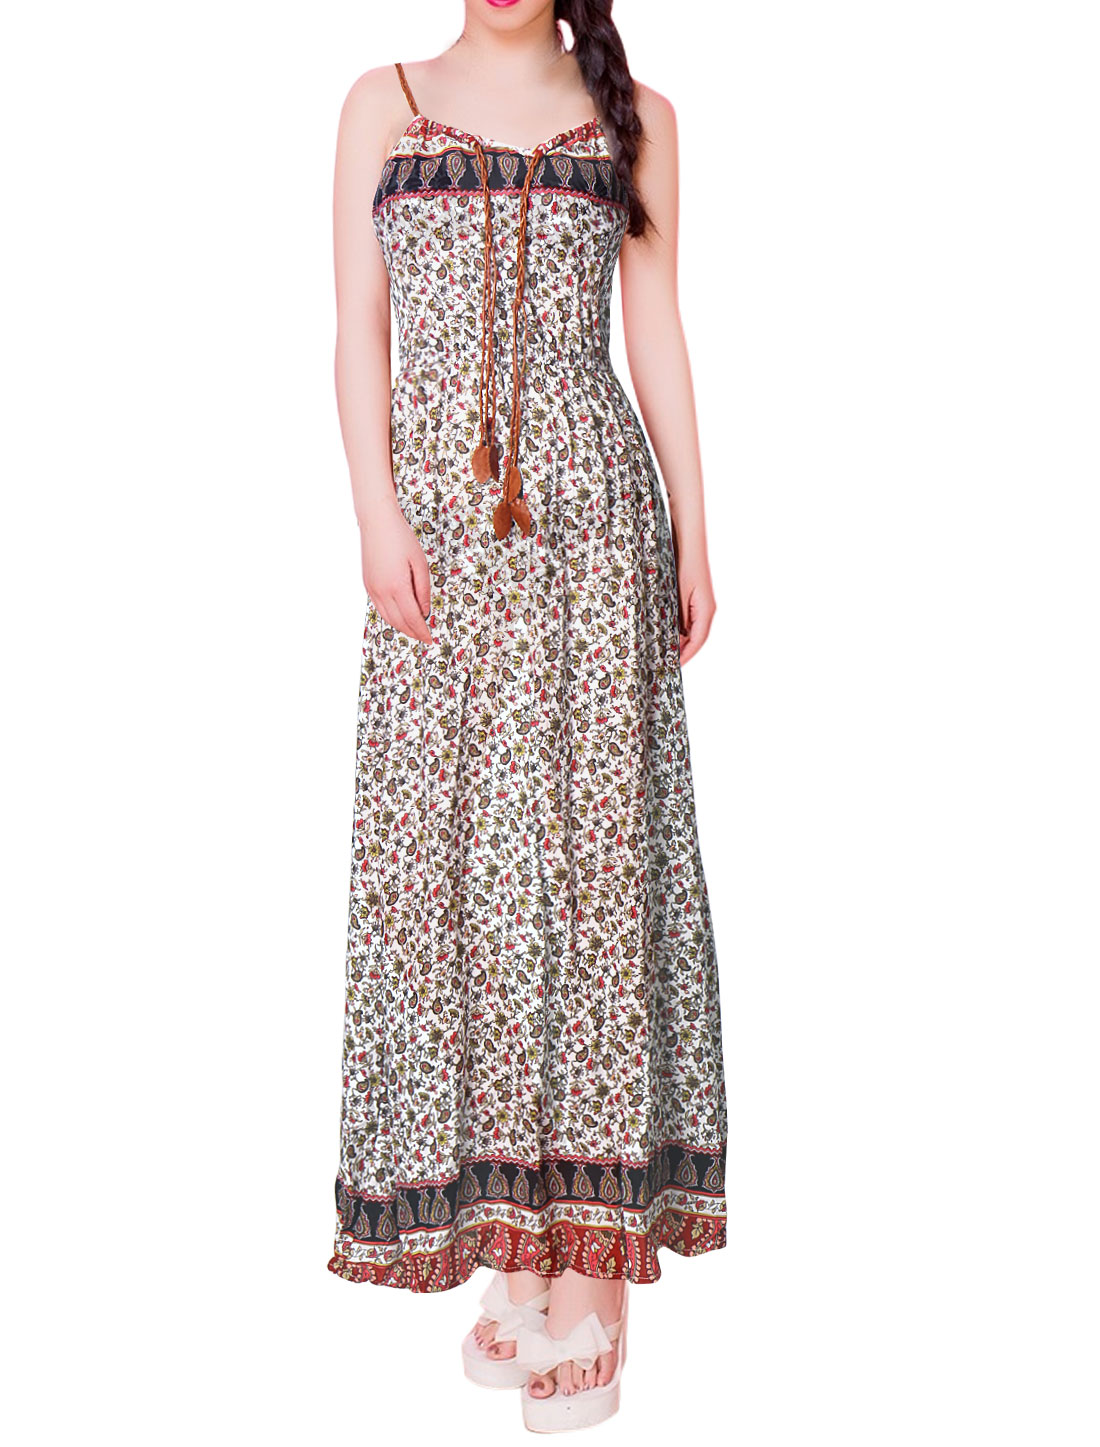 Women Drawstring Elastic Waist Flower Paisley Maxi Dress White XS